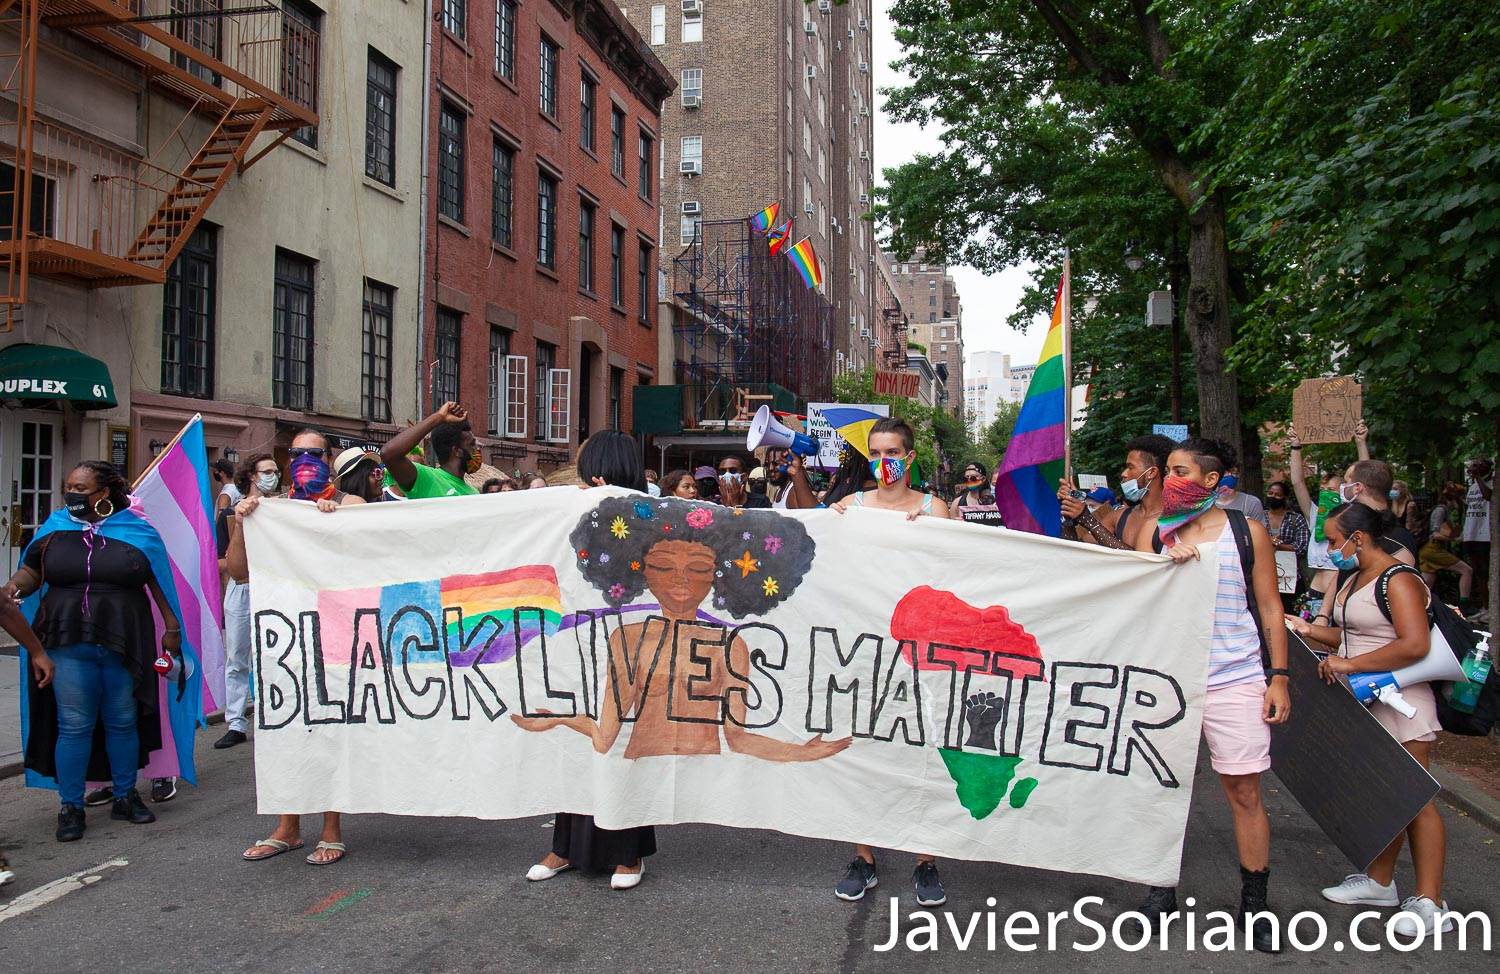 """Thursday, July 30, 2020. Manhattan, New York City - Rally and March: """"Liberation for Black Queer and Trans people."""" Protesters had a rally in front of The Stonewall Inn. After the rally, they marched to Foley Square Park. A Trans woman said sometimes Trans women and Trans men are killed by police and sometimes they are killed by their own community. Activists said all Black Lives Matter. Joel rivera said, the rally and march was to honor and acknowledge Black Queer and Trans people. Photo by Javier Soriano/www.JavierSoriano.com"""